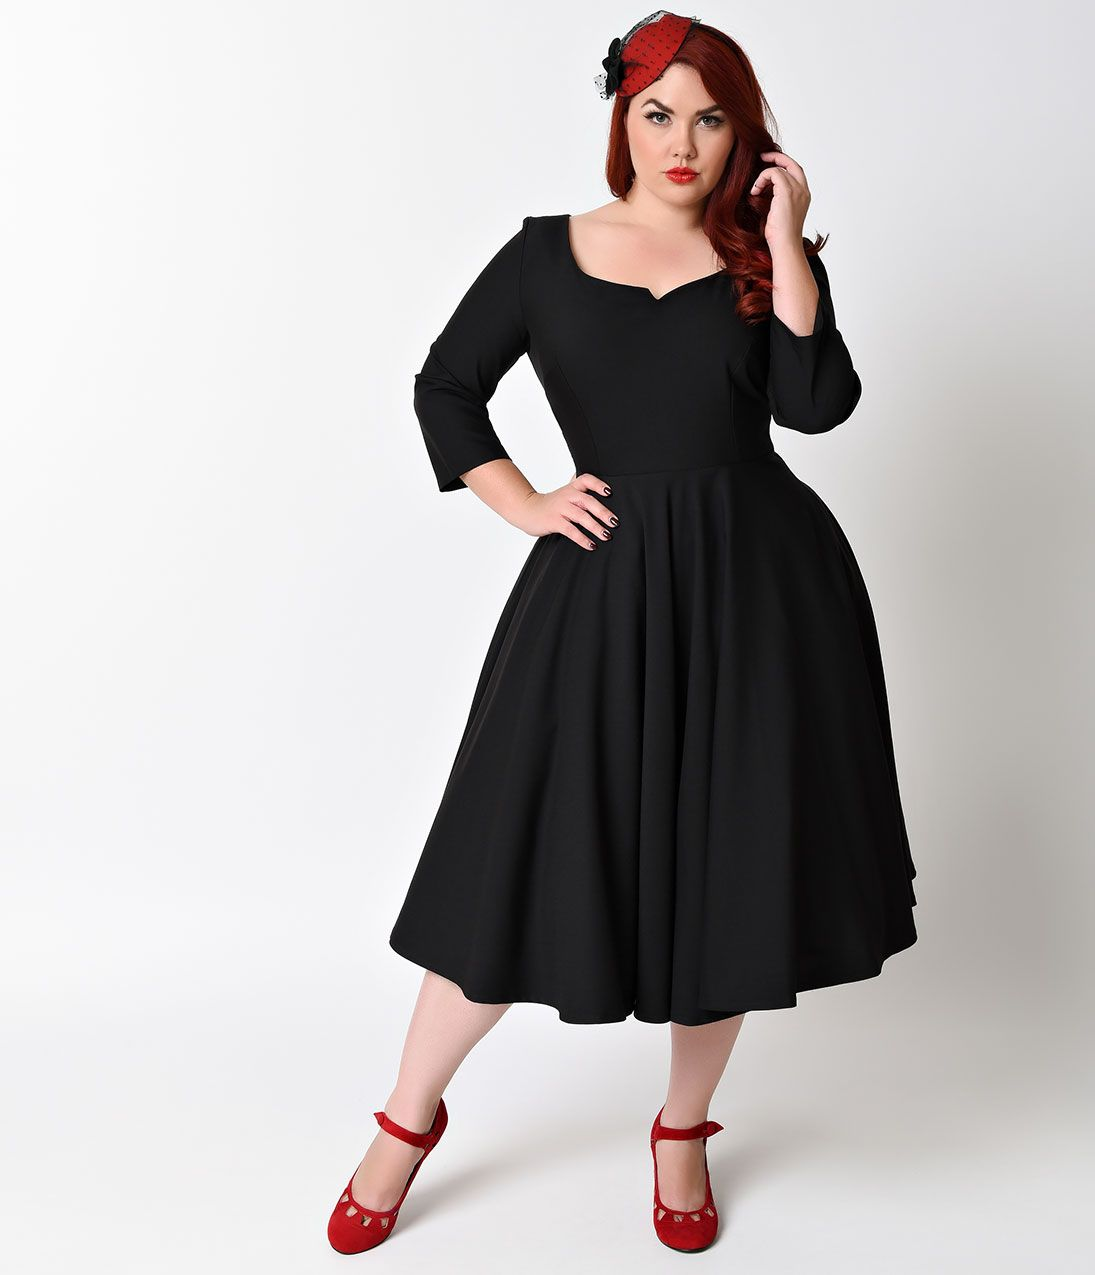 Plus Size Vintage Dresses, Plus Size Retro Dresses ...